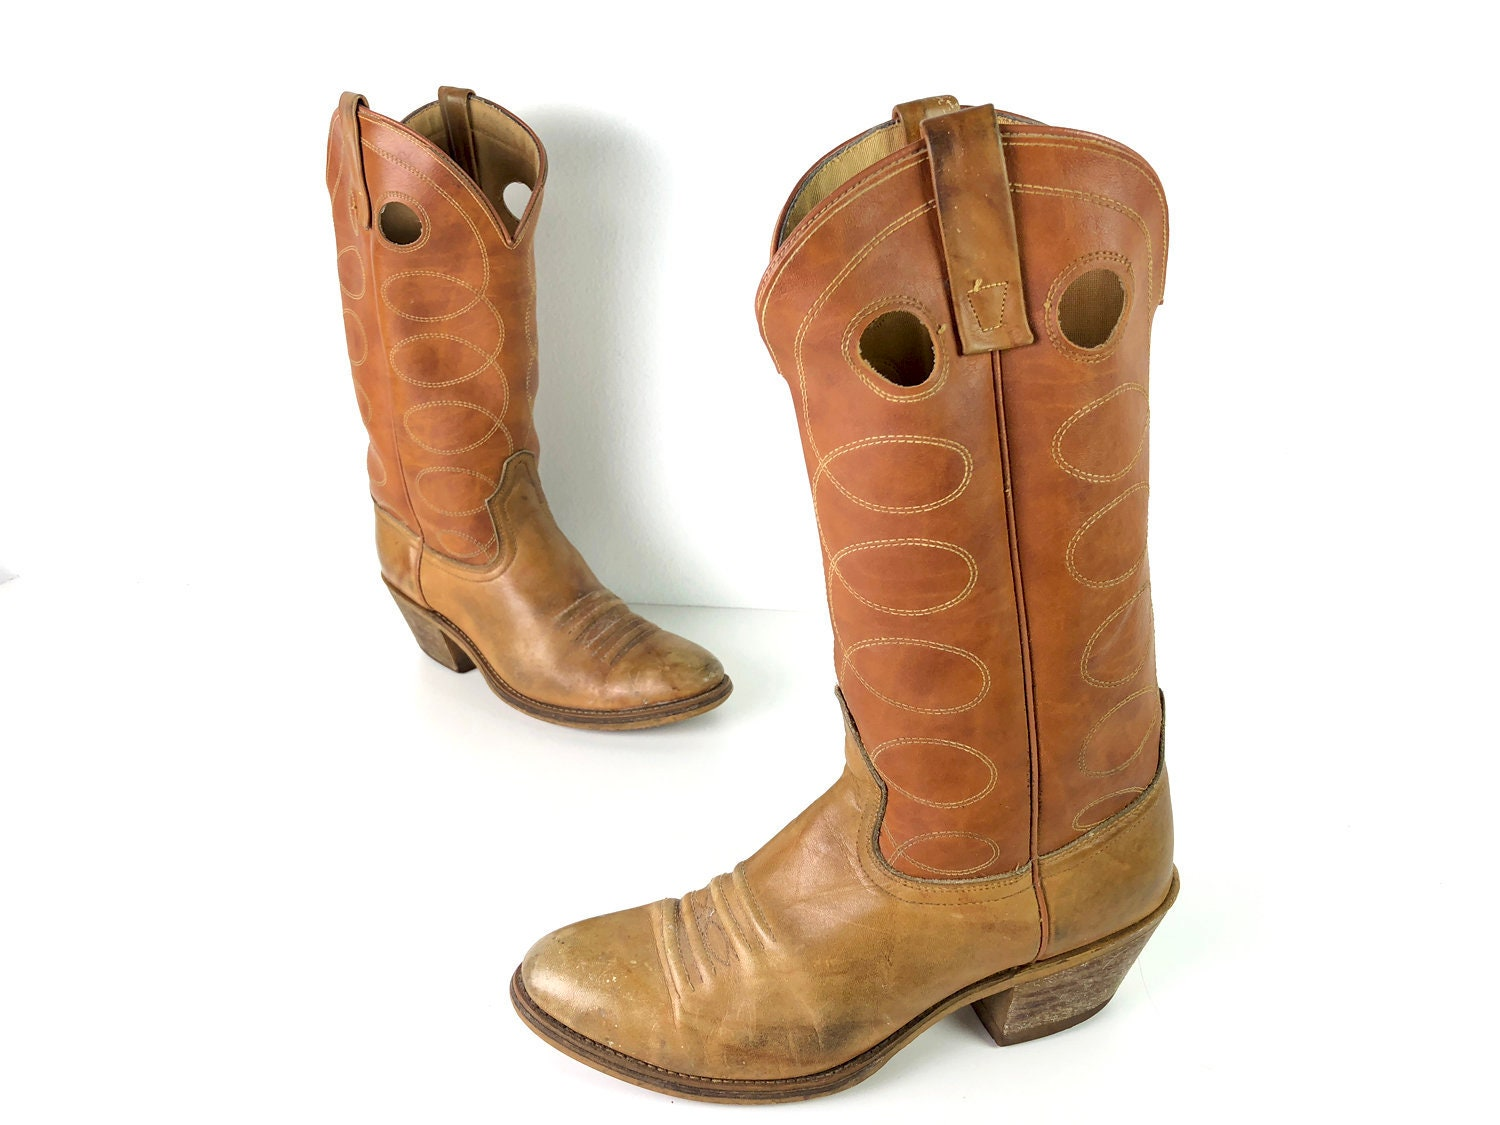 1c1ace1b91b Vintage Acme Cowboy Boots 2-Tone Buckaroo Boots Mens 9 D - Honey Brown &  English Tan Boots - 70s or 80s Boots with Leather Soles Made in USA